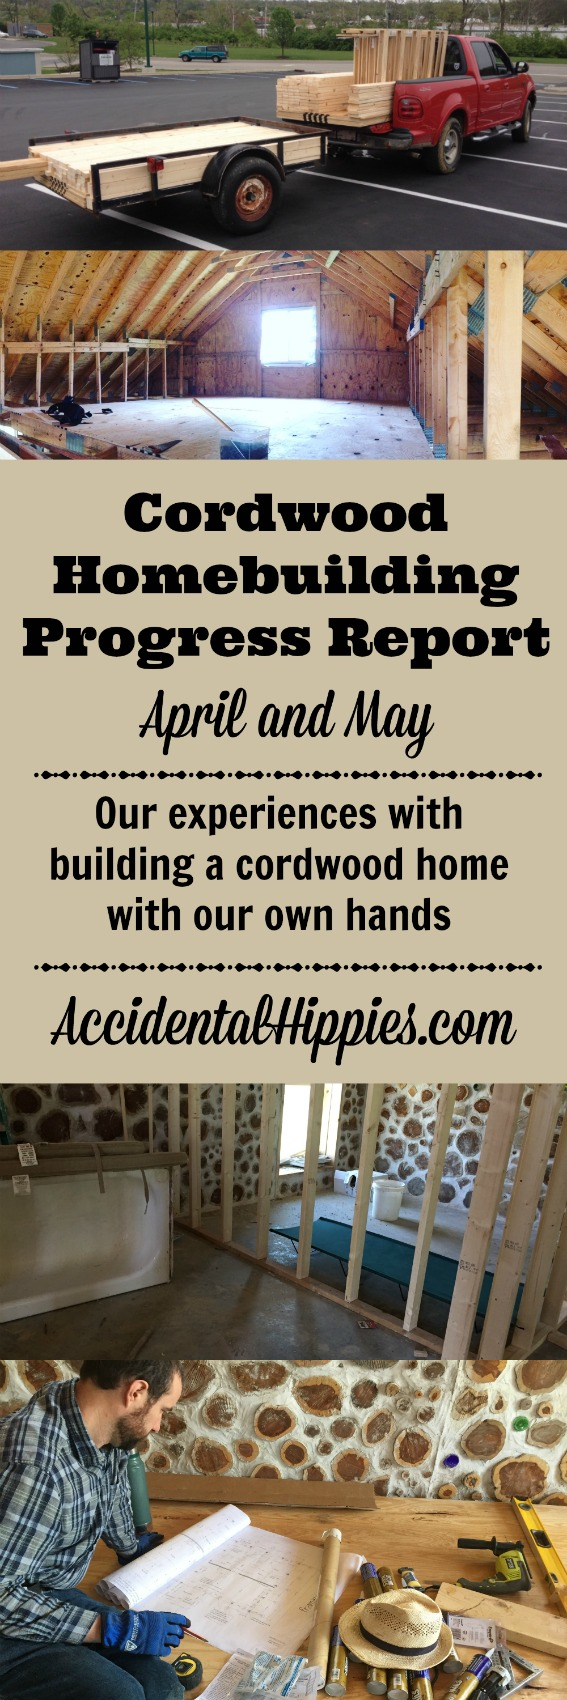 Building a cordwood house | Stud Framing | Subfloor | Quitting job to homestead